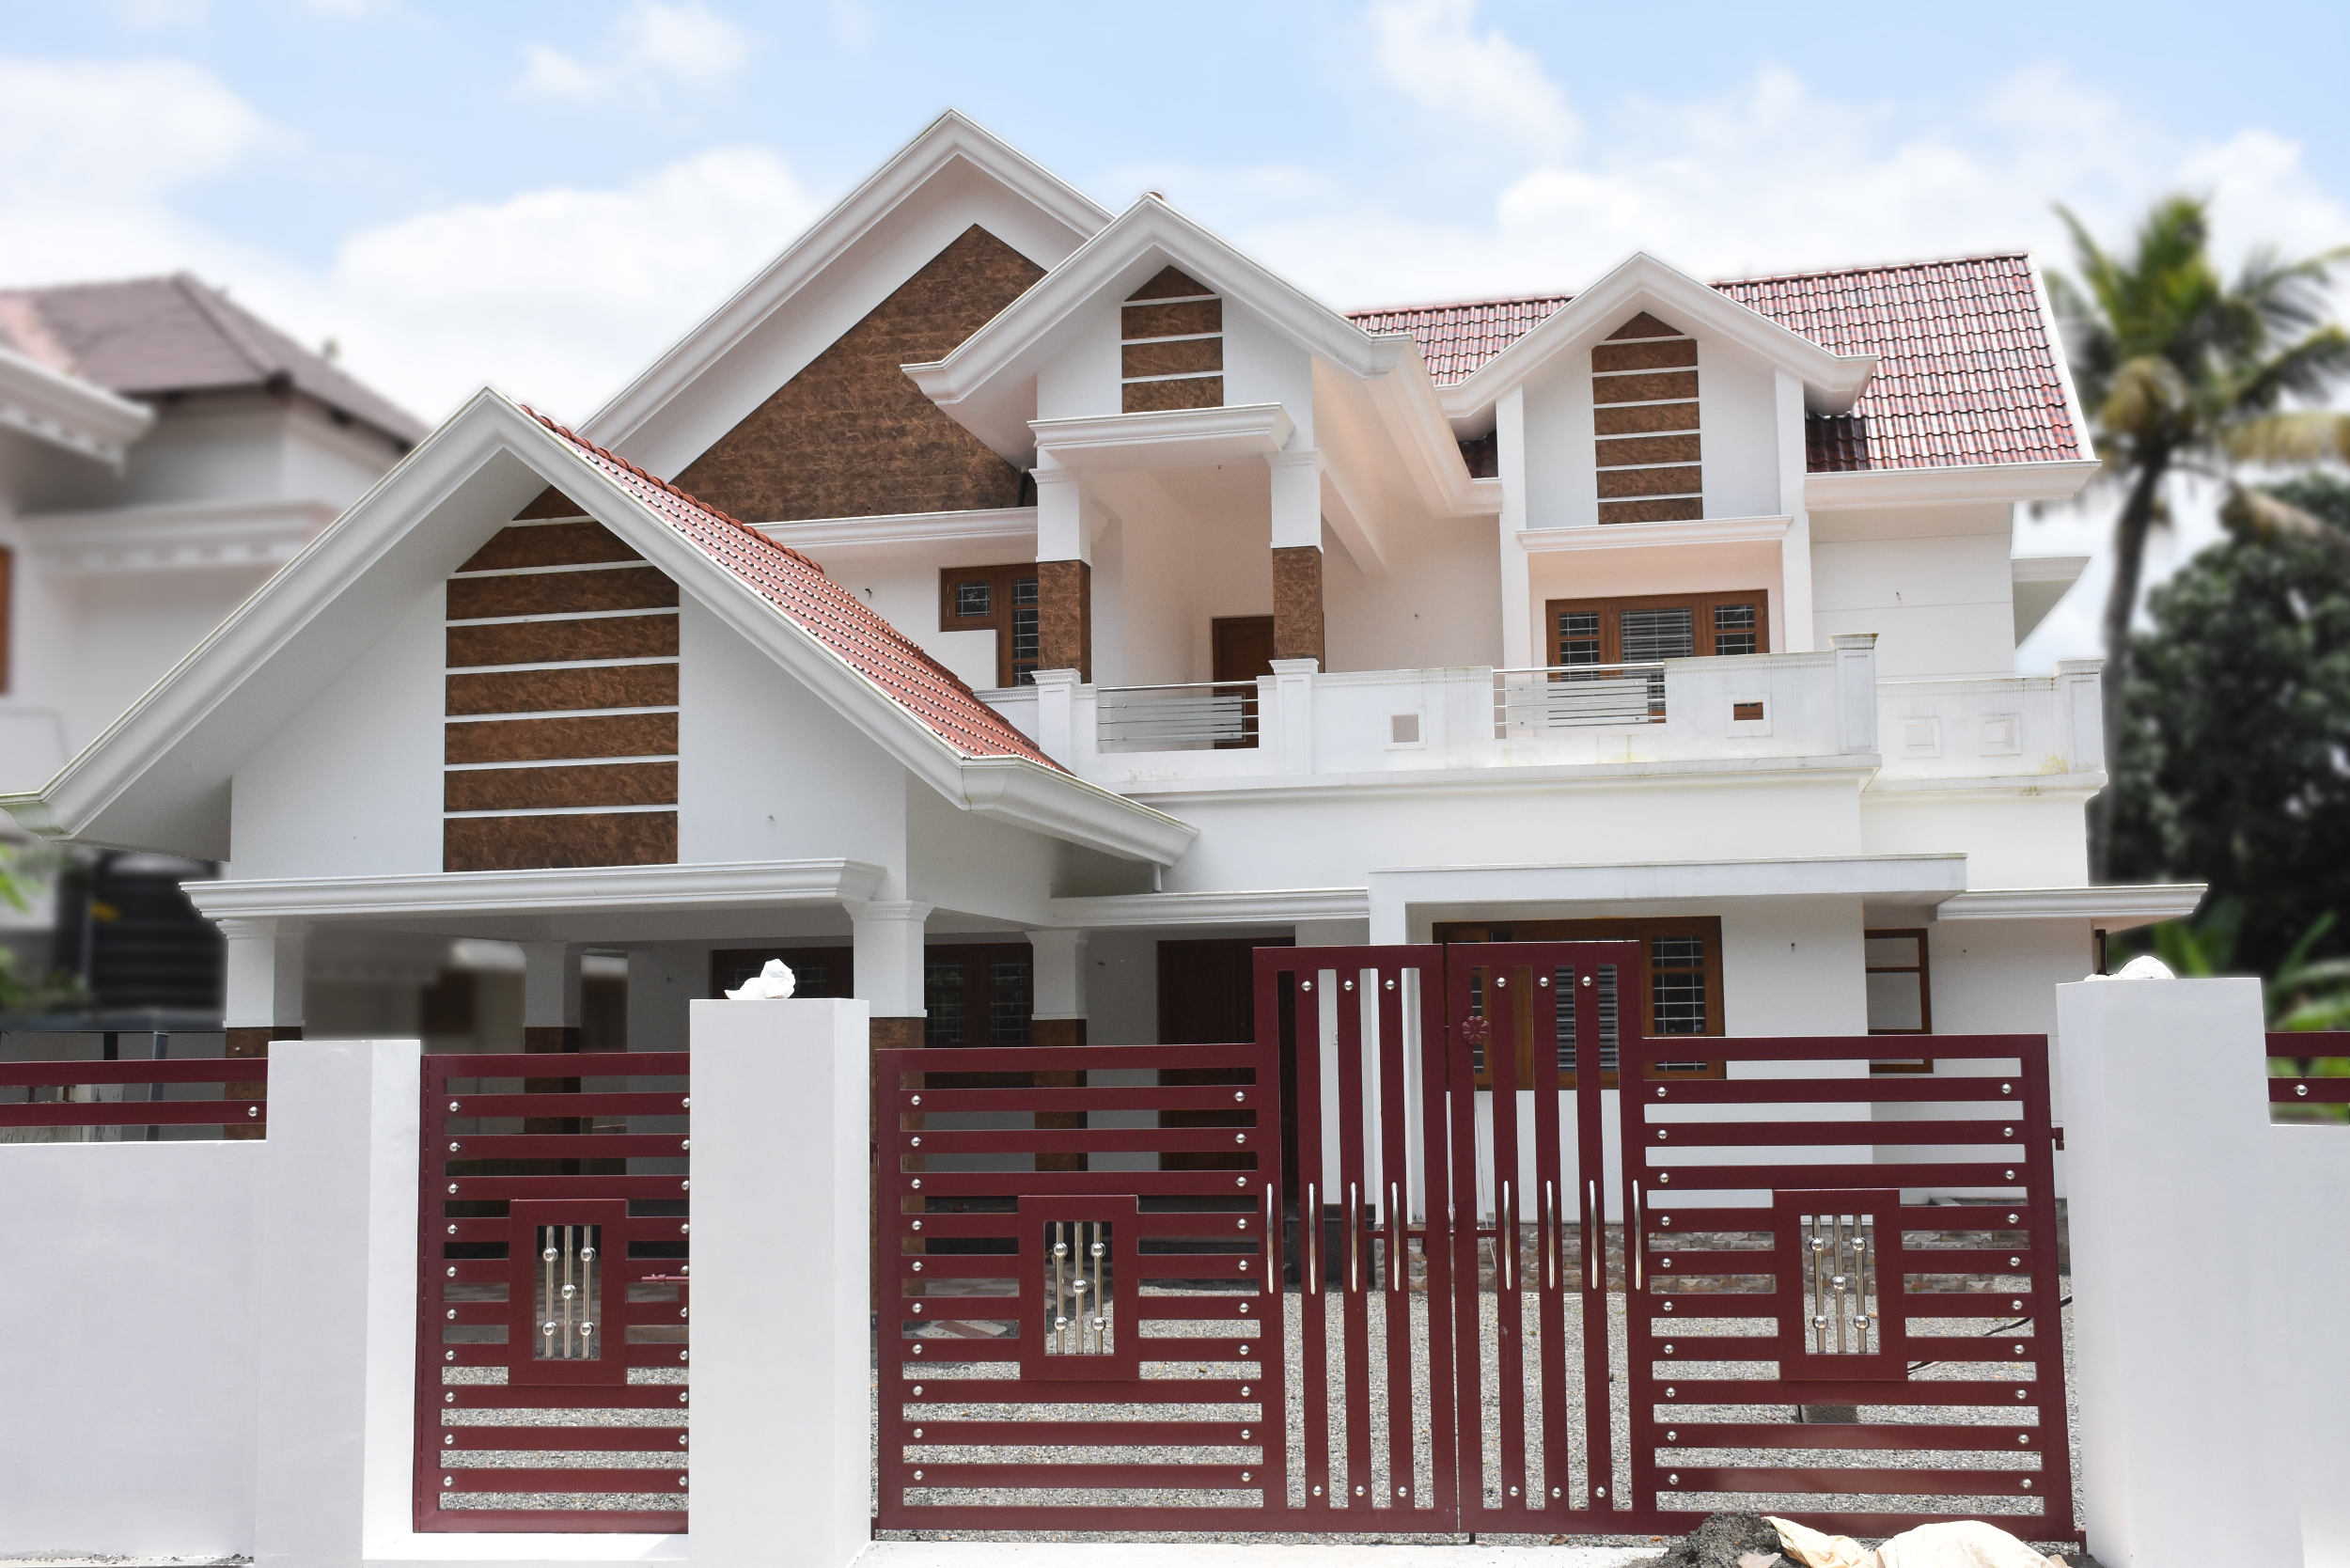 House Designs Beautiful House Models House Architectures House Models Villa Designs Villa Architecture Kerala House Design Villa Design Architecture House